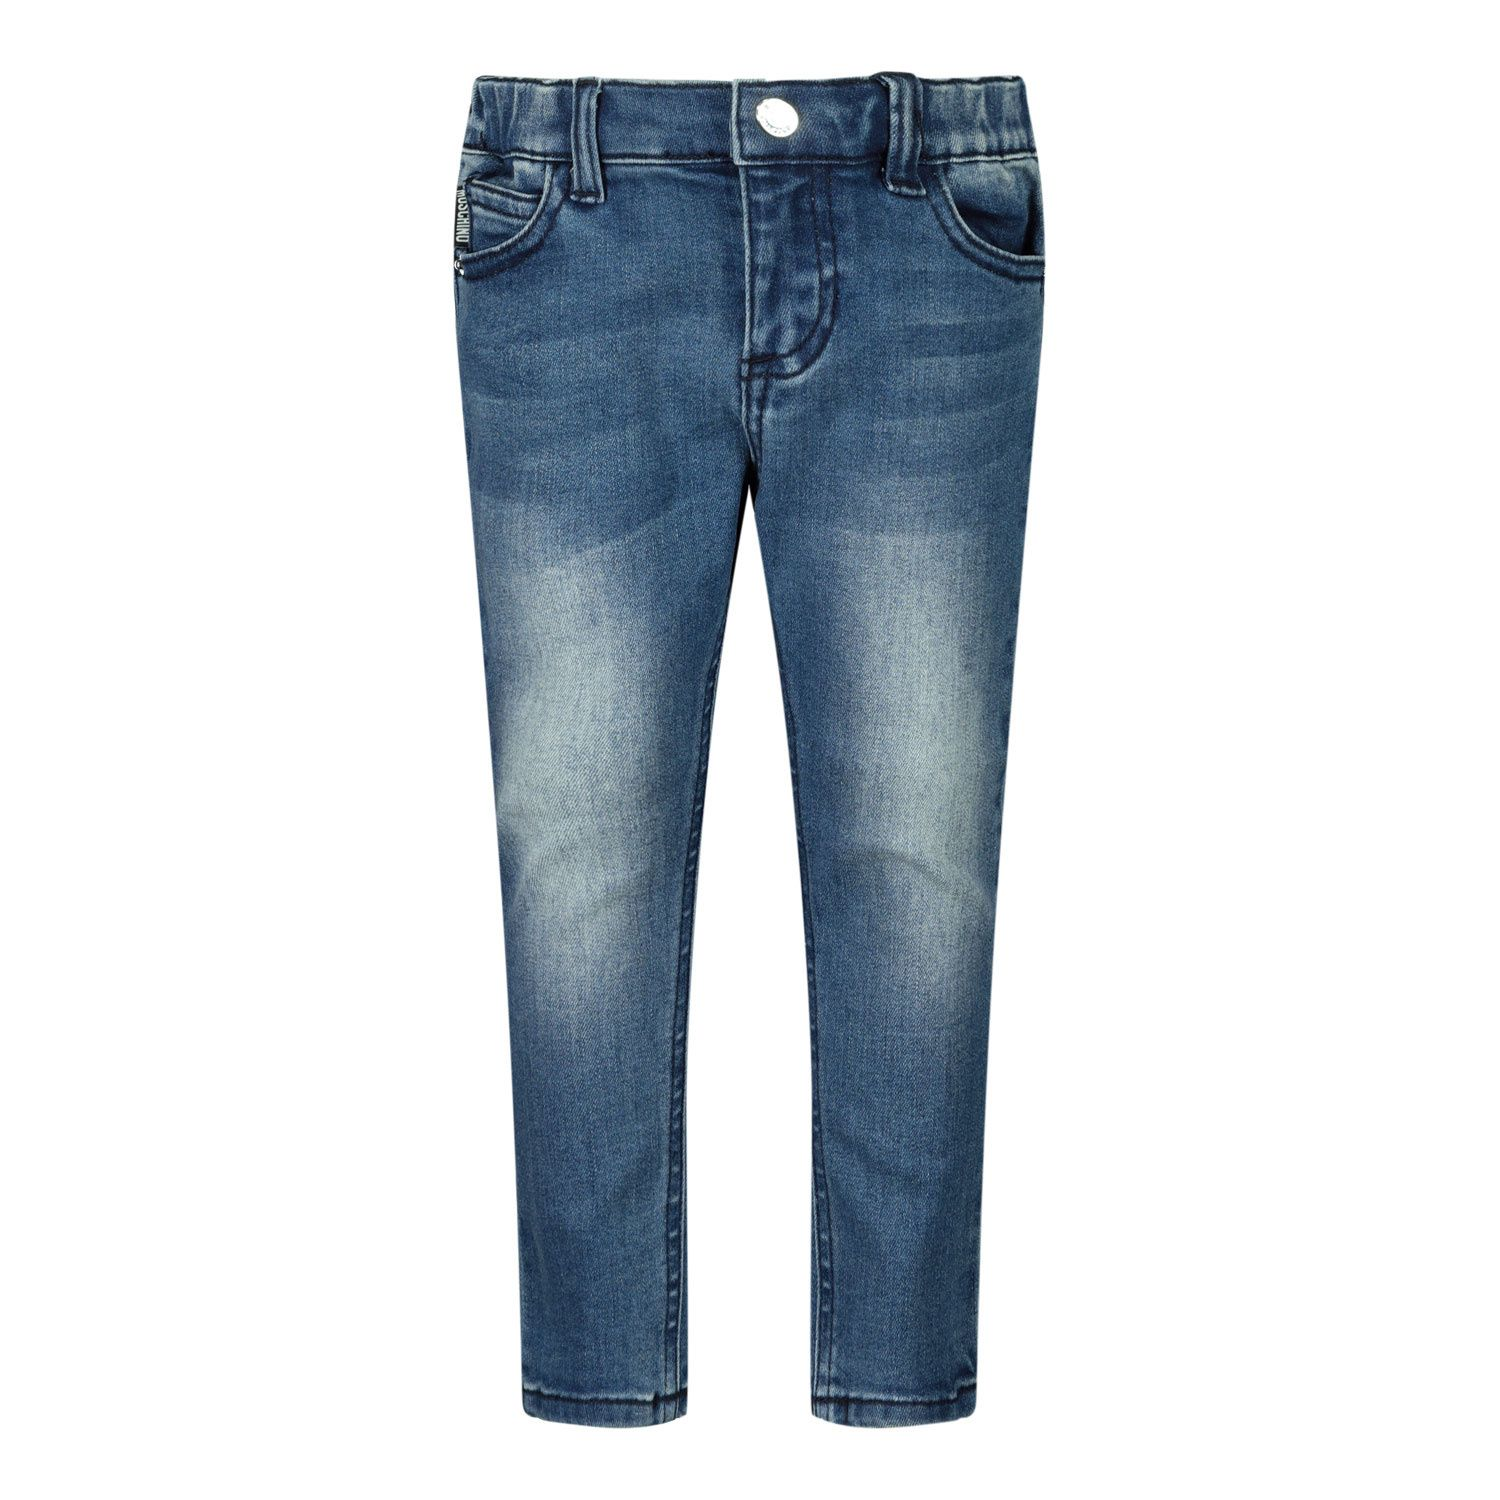 Picture of Moschino MMP038 baby pants jeans